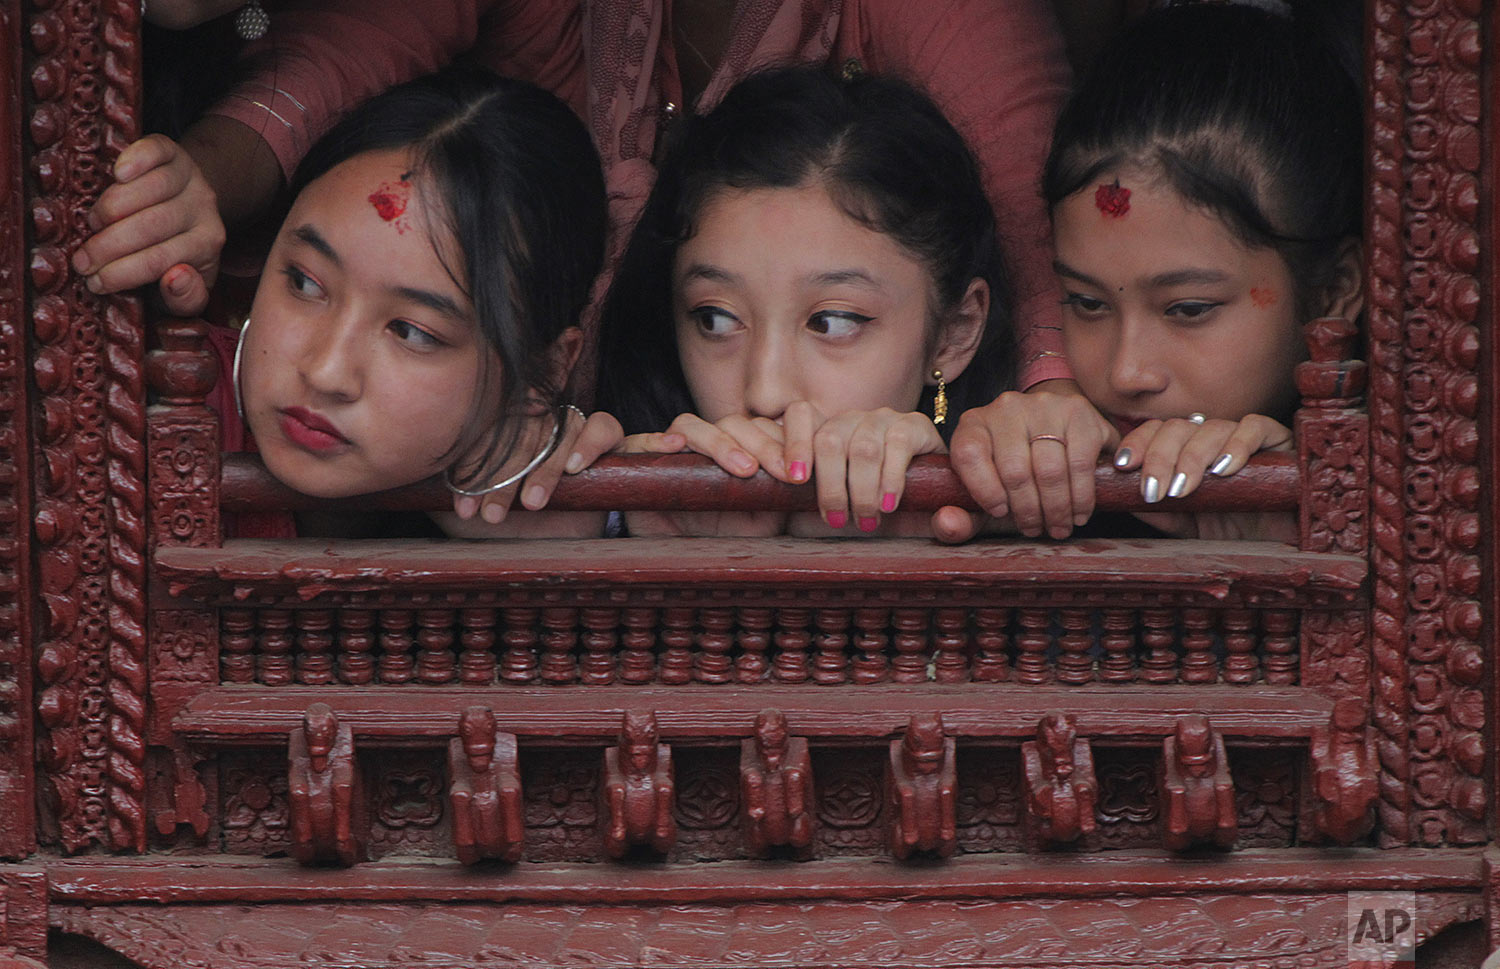 Former living goddess Kumari, center, watches the Indra Jatra festival, an eight-day festival that honors Indra, the Hindu god of rain, in Kathmandu, Nepal, Friday, Sept. 13, 2019. (AP Photo/Niranjan Shrestha)